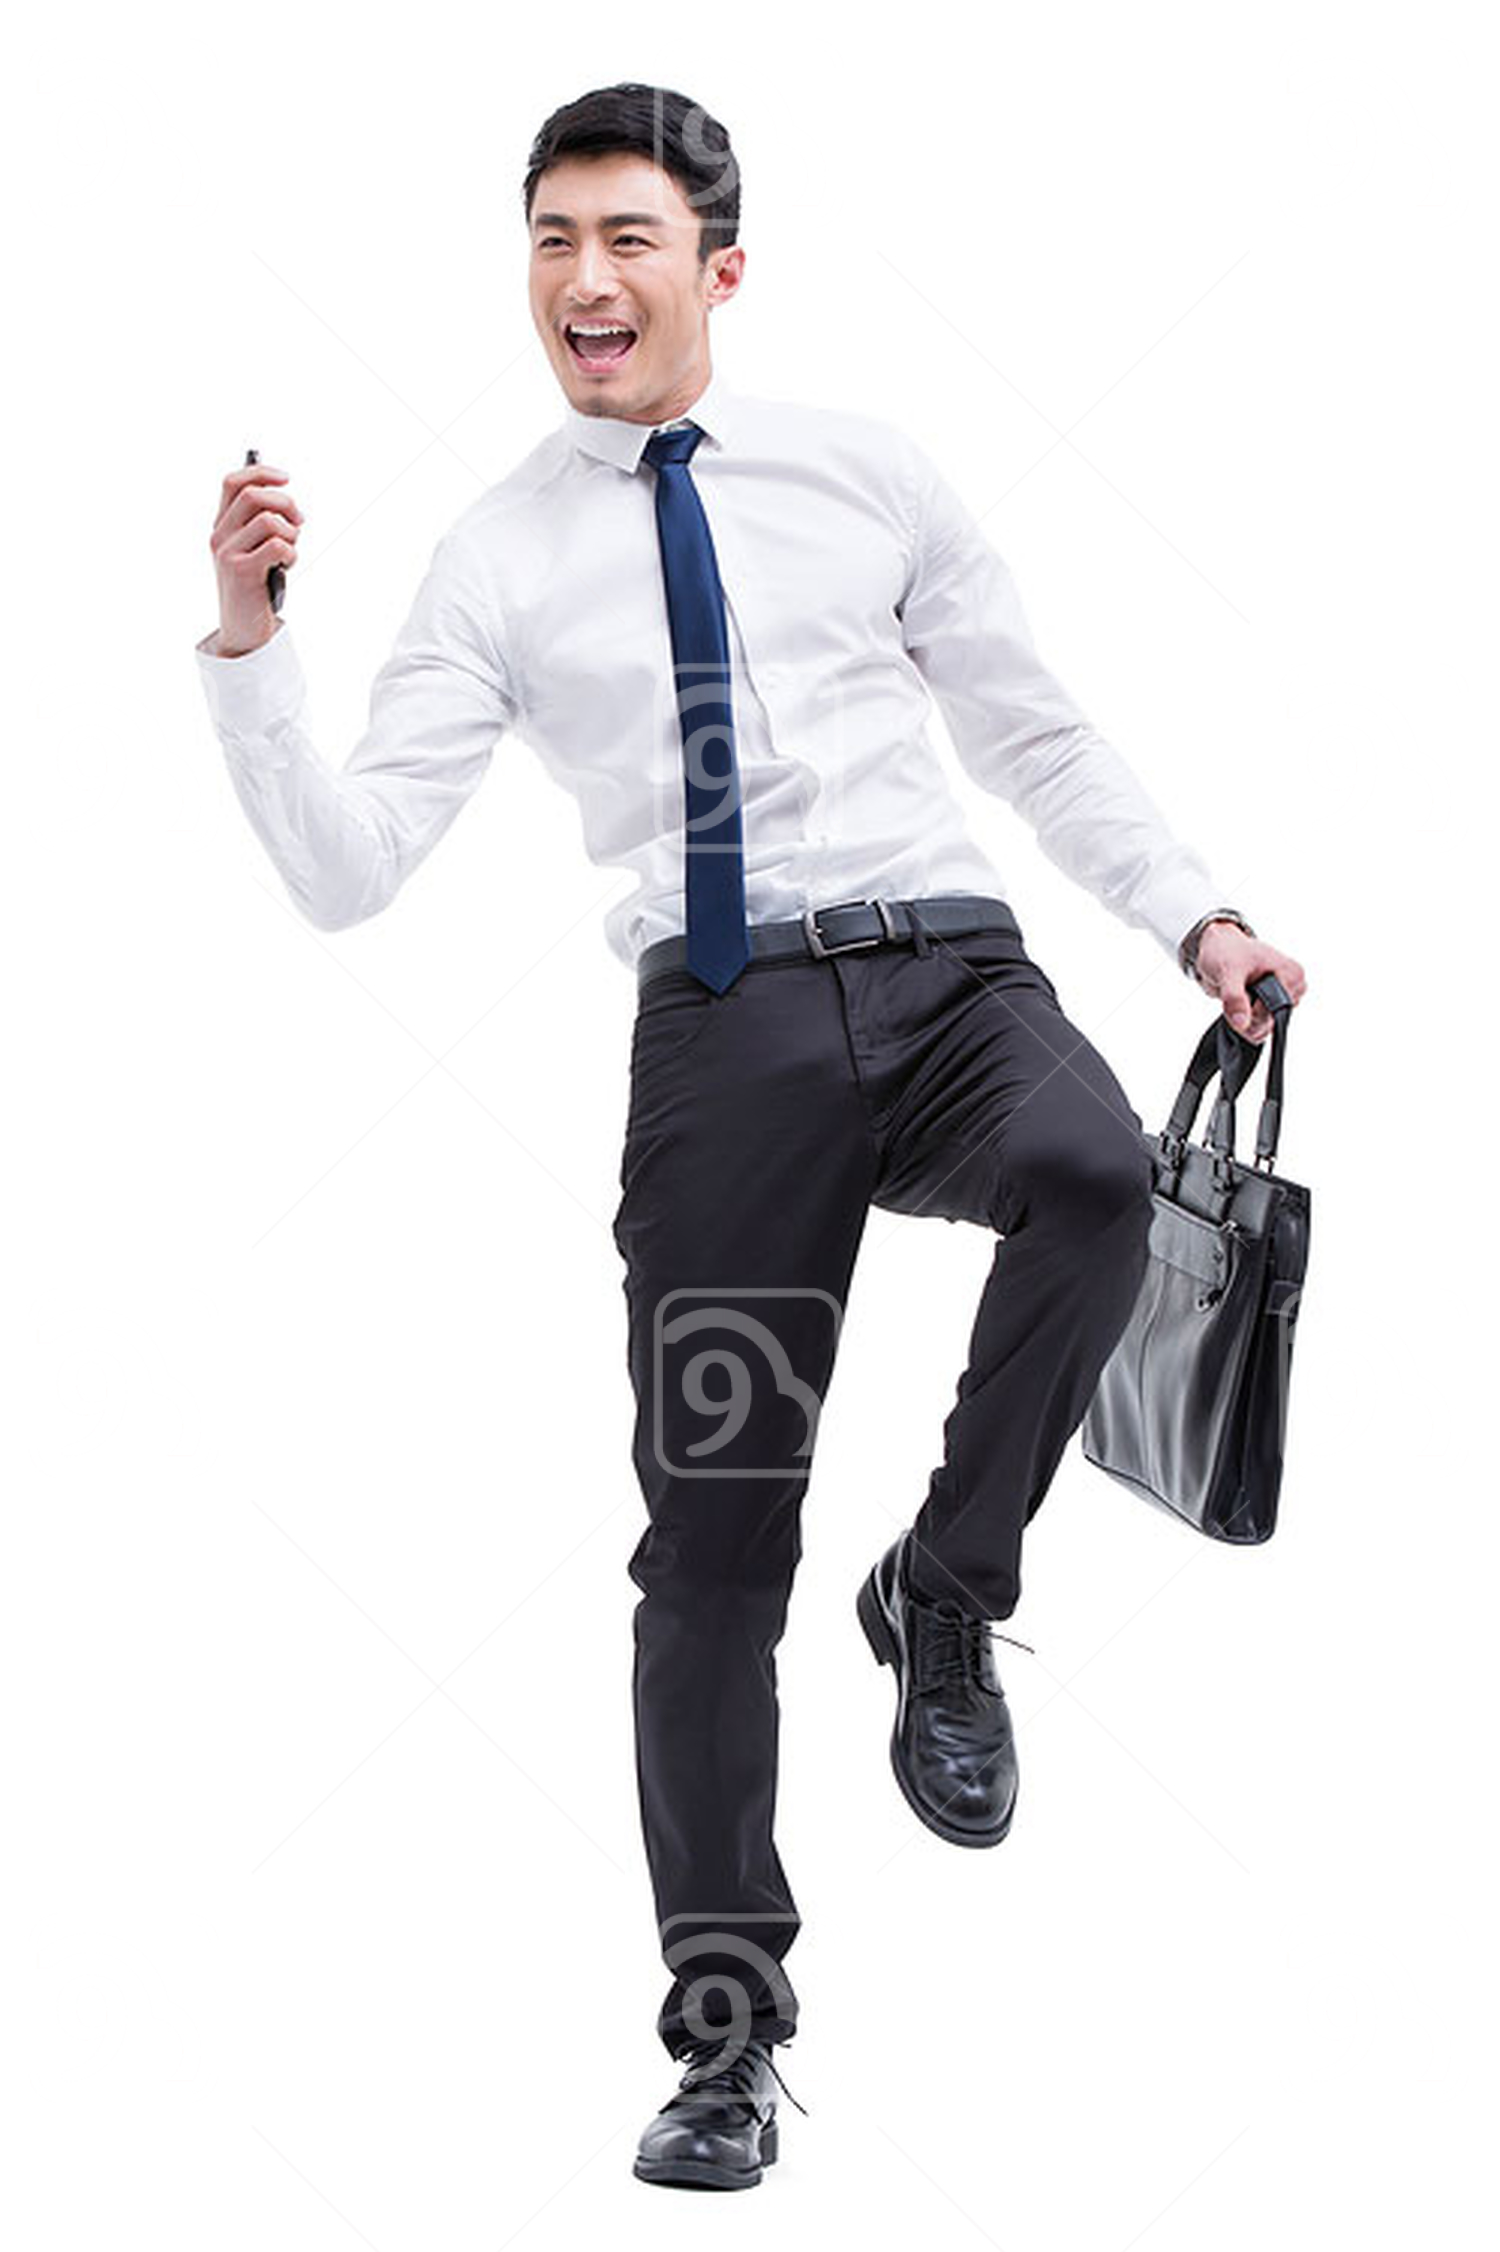 Fashionable Chinese businessman punching the air